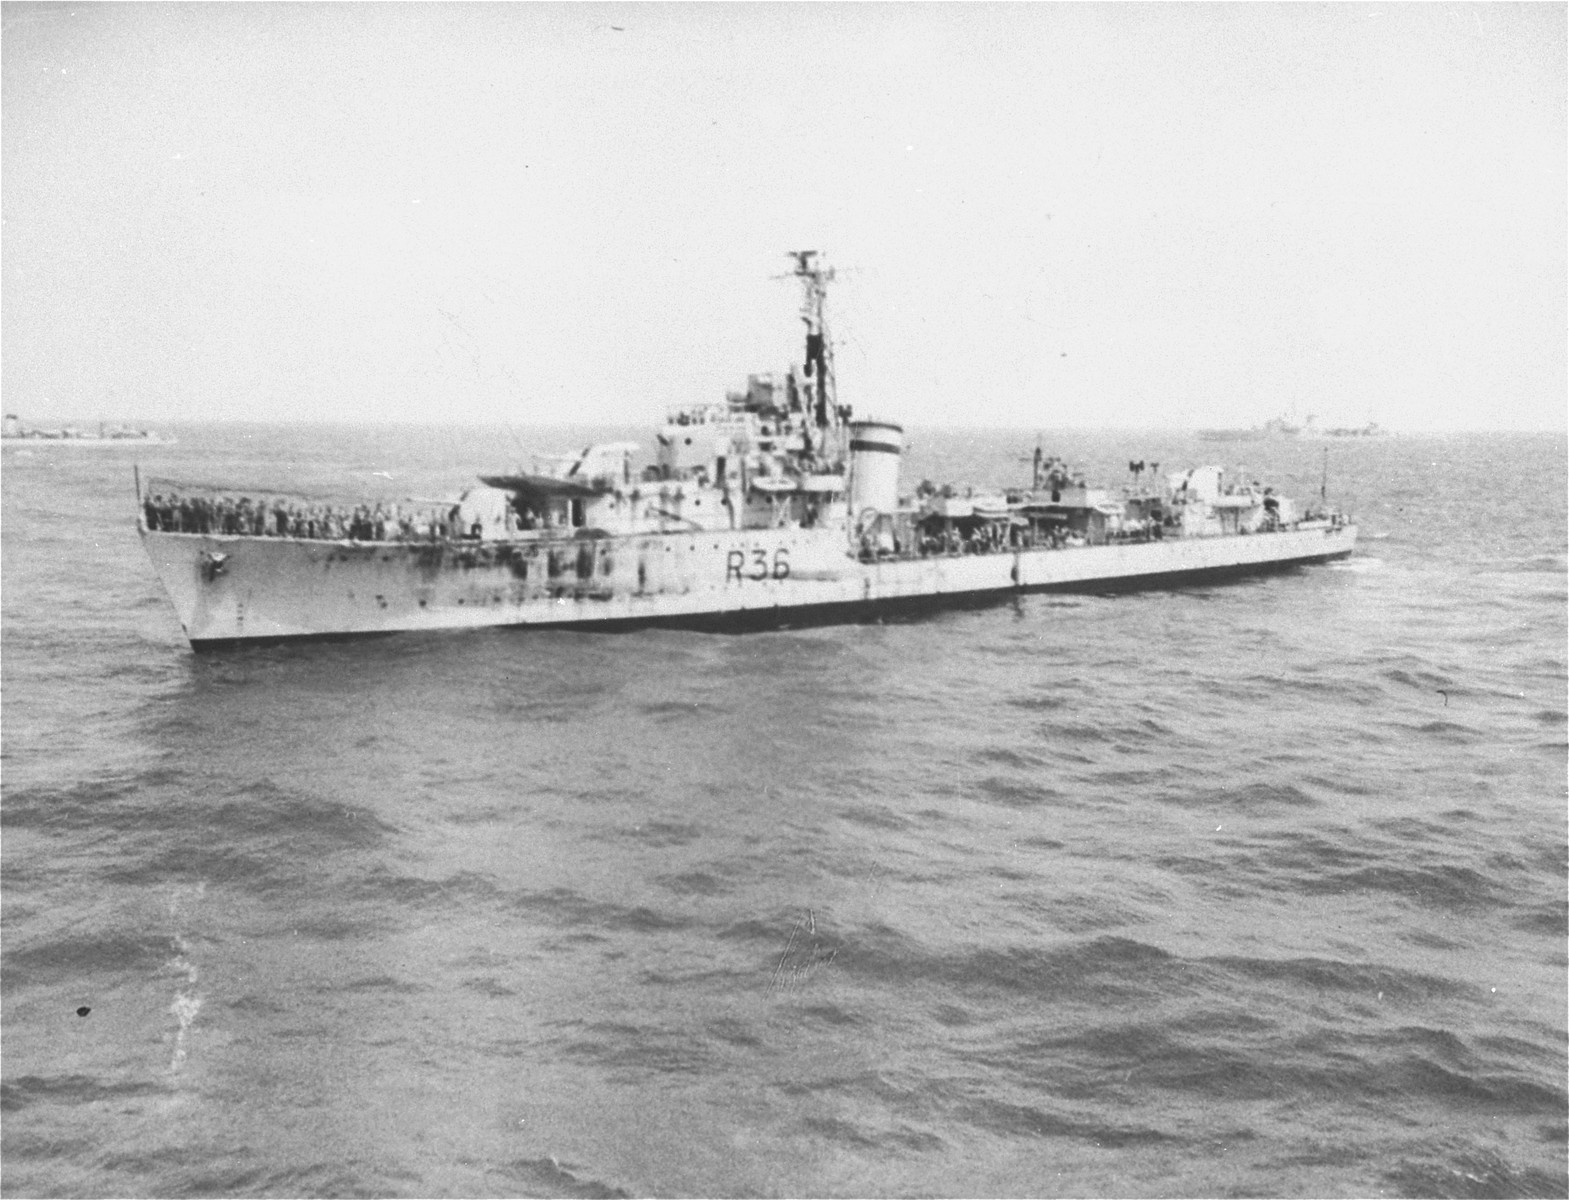 A British warship that has been dispatched to prevent the landing of the Exodus 1947, approaches the illegal immigrant ship off the coast of Palestine.